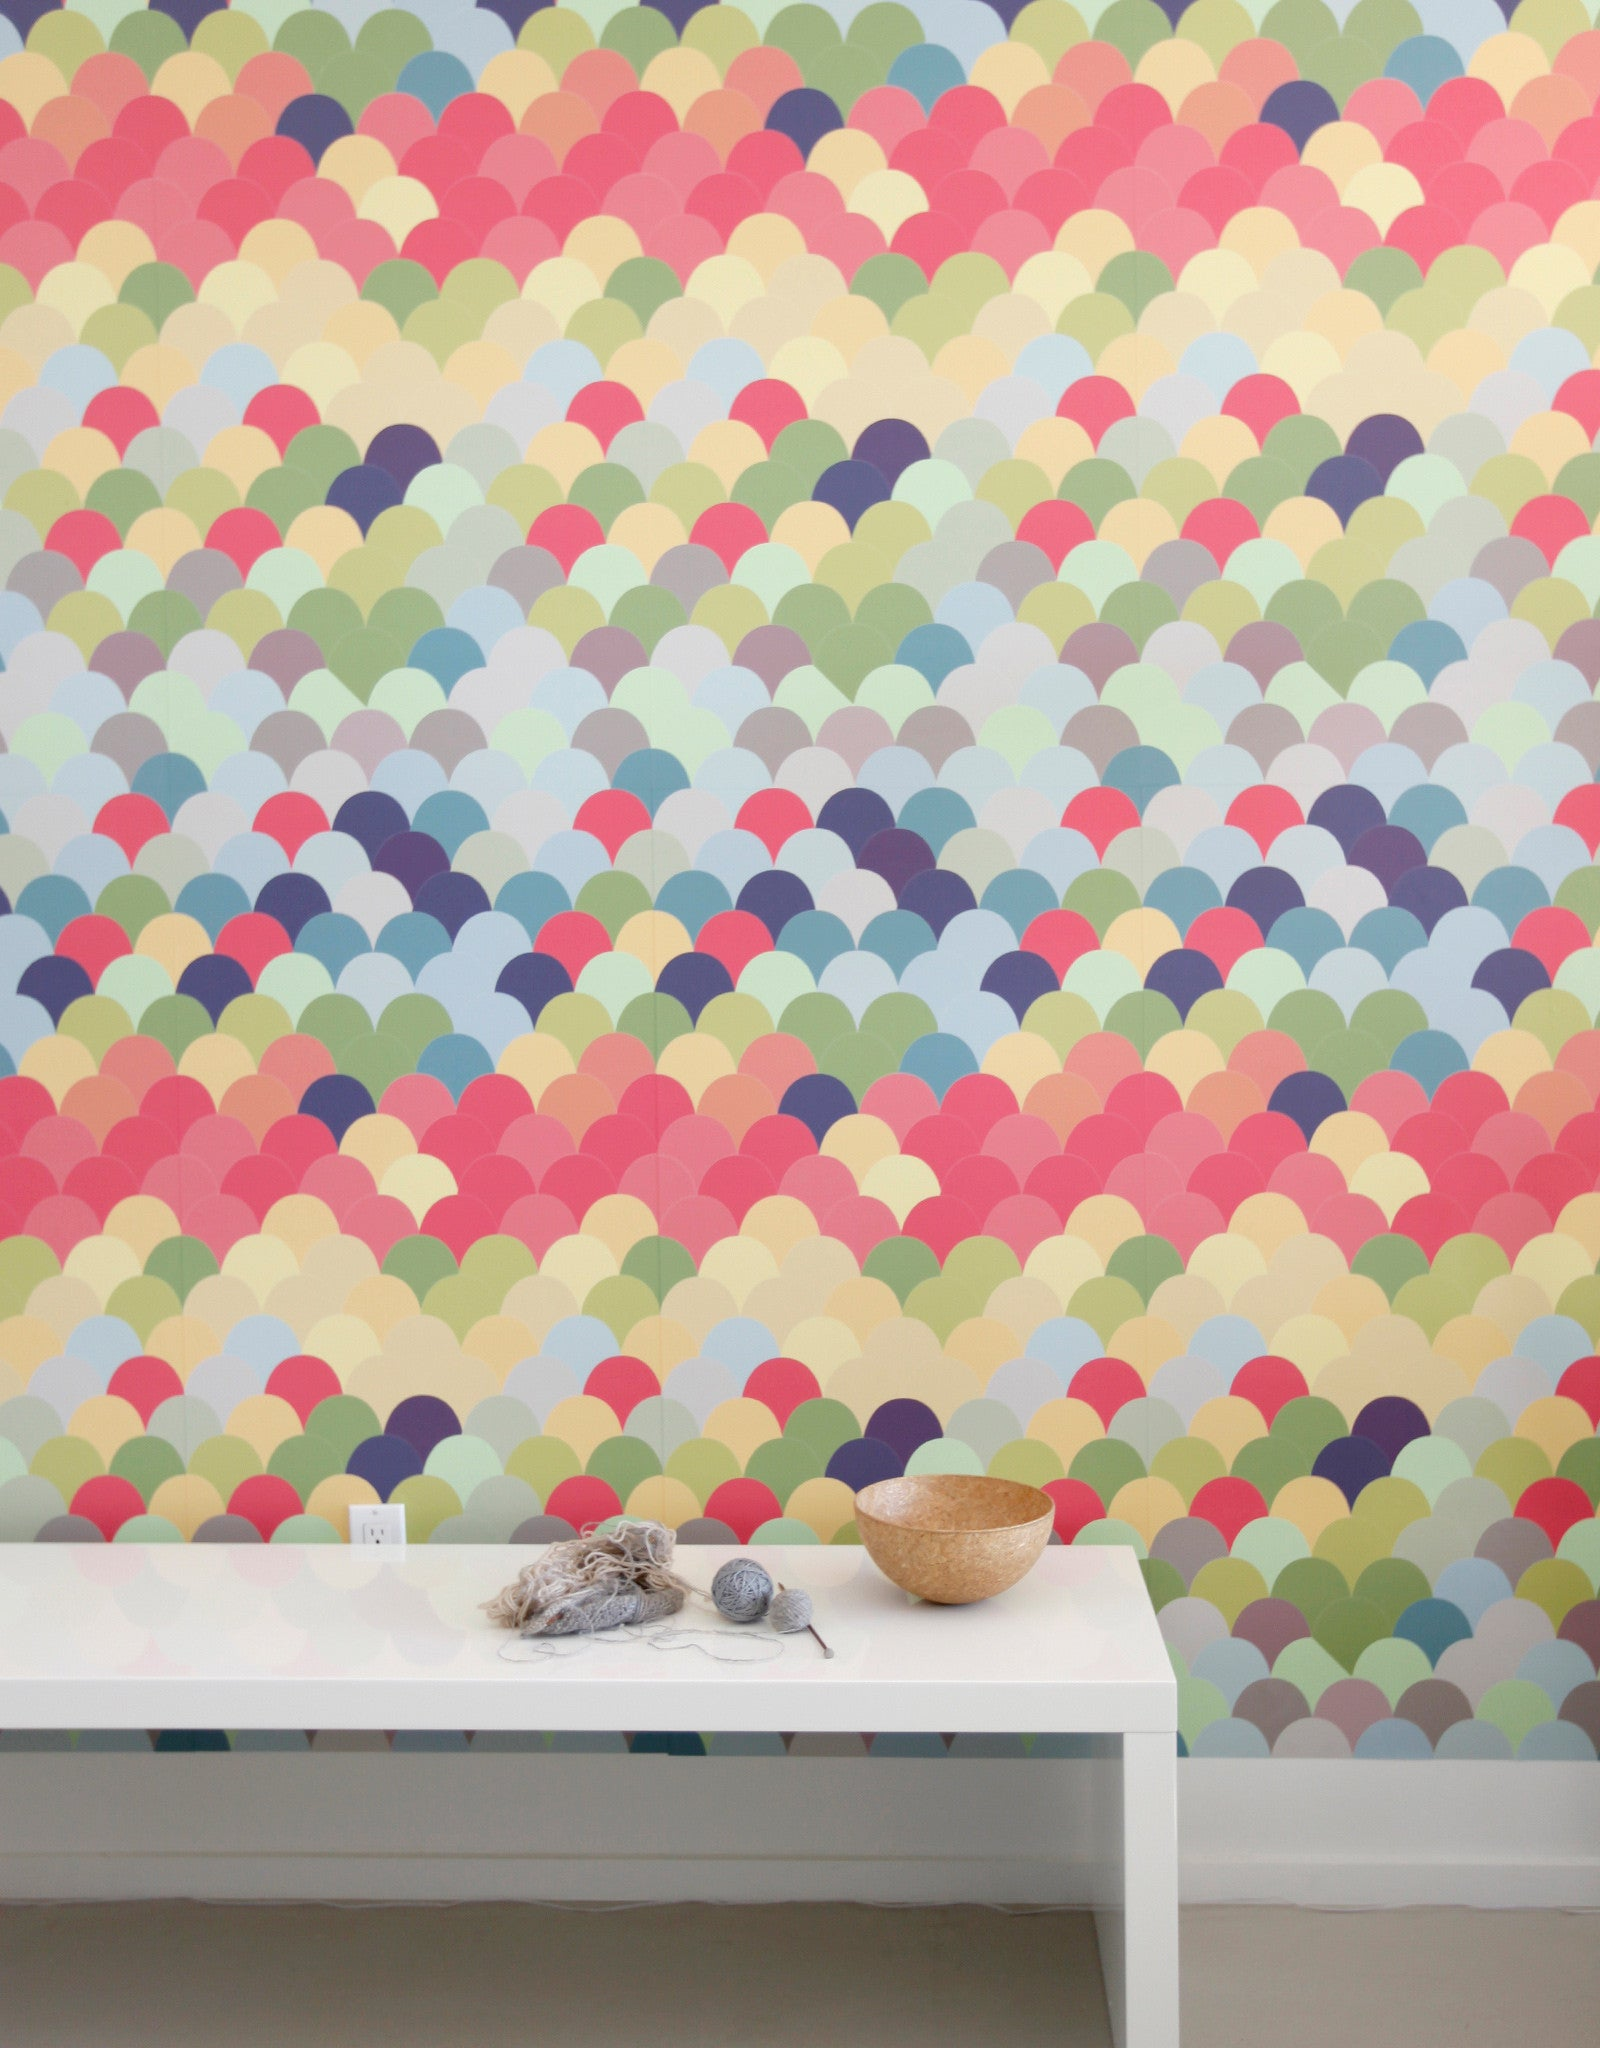 Fishwall ~ Pattern Wall Tiles : blik wall decal - www.pureclipart.com